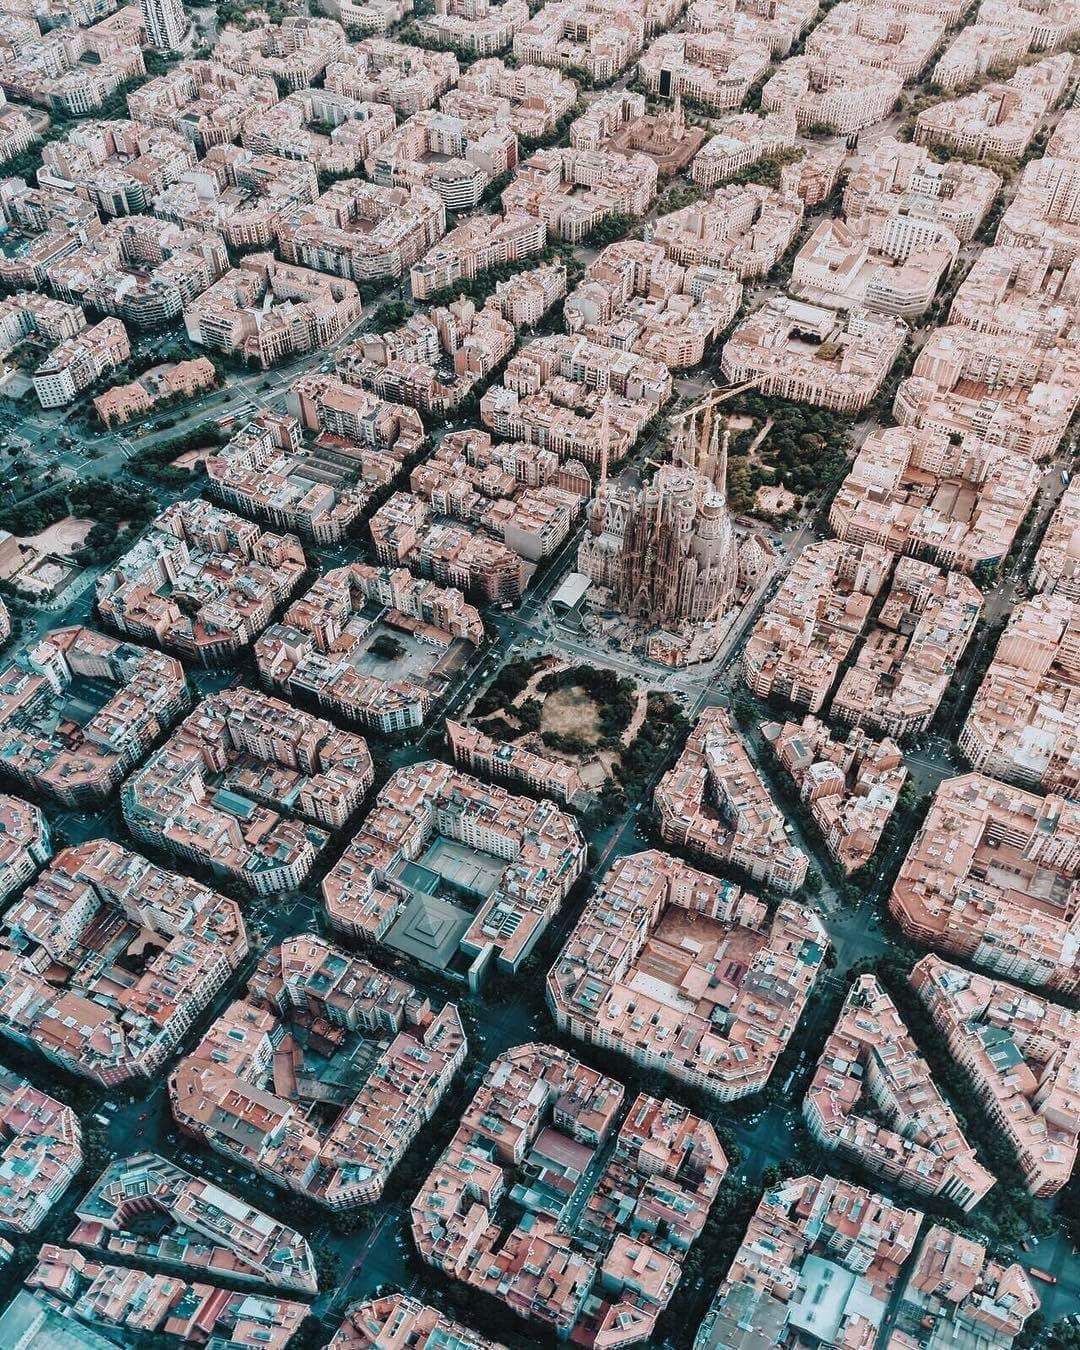 Barcelona from sky: https://t.co/peWLgcxGpf